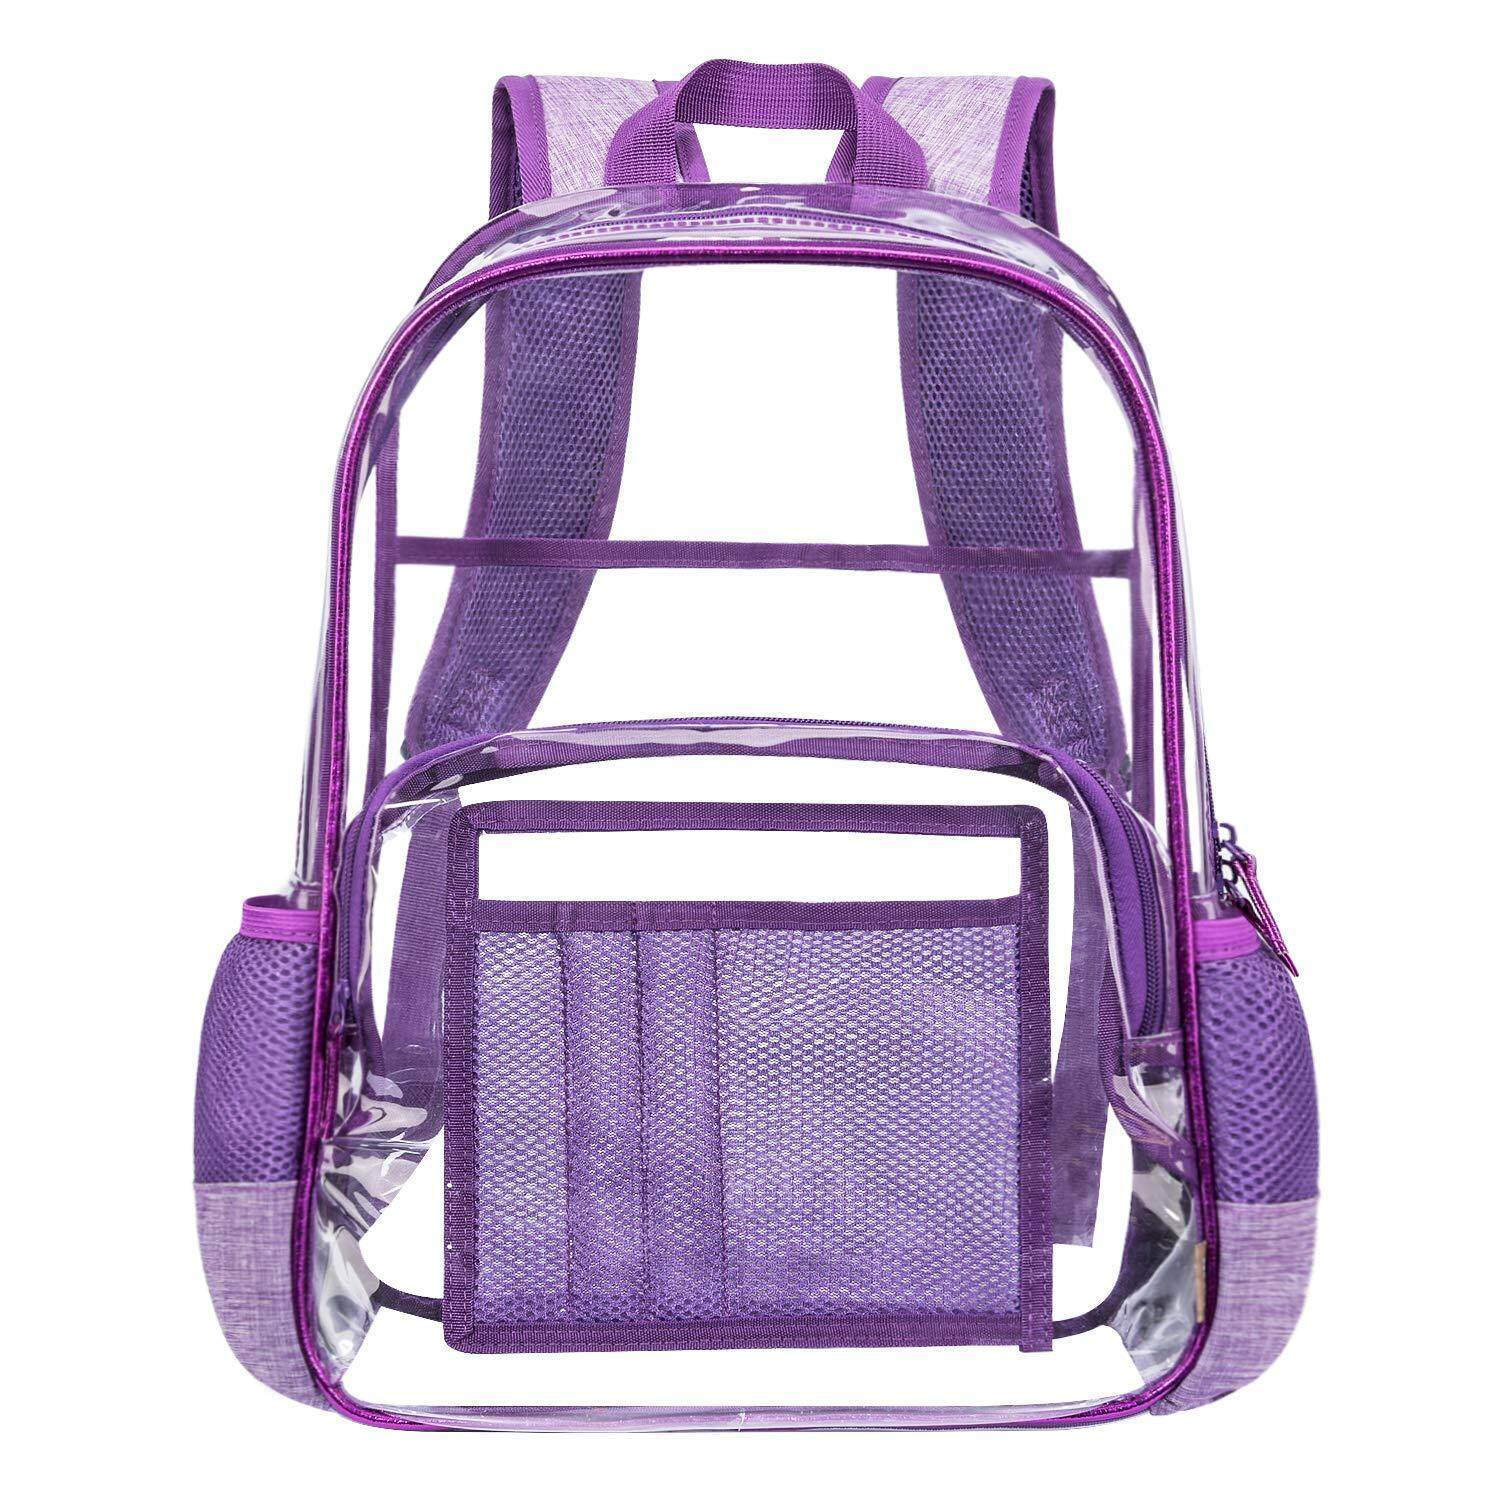 4033cdd10cd4 Clear Backpack for Women and Men Cute School Backpack for Kid Girl Boy  Clear Bookbag for